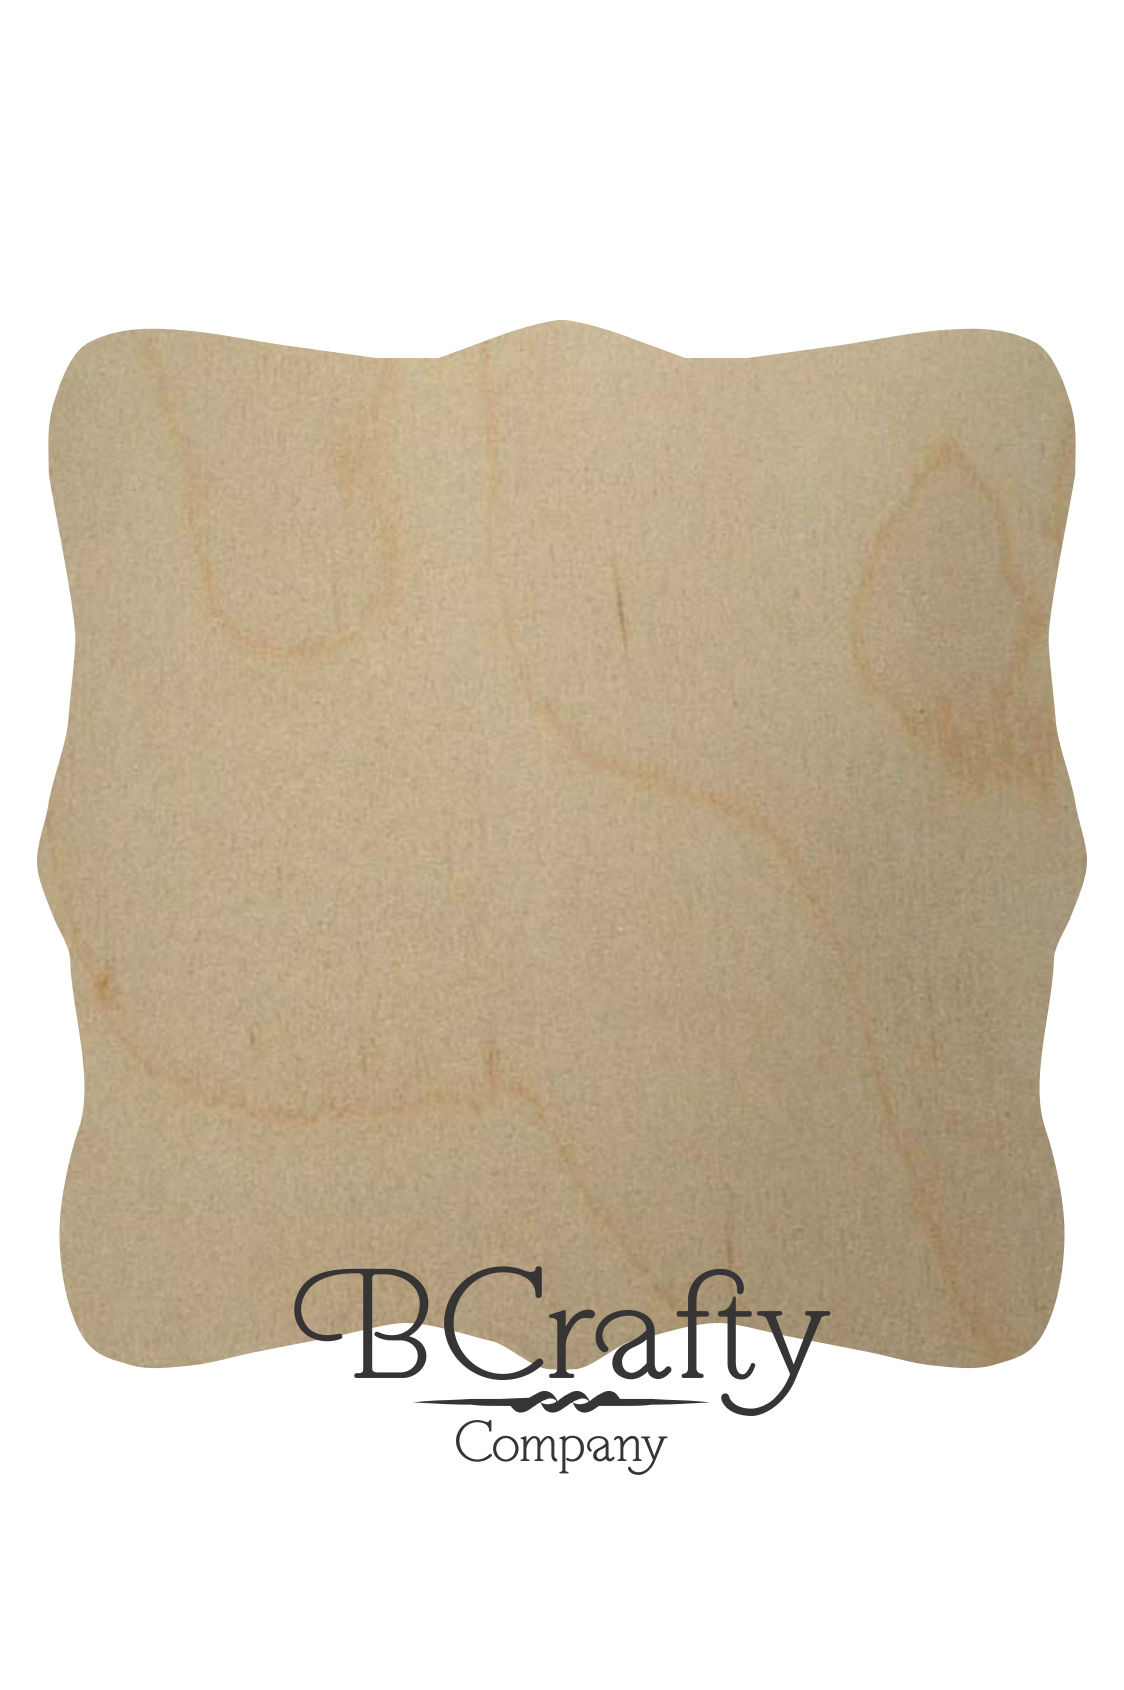 Blank wooden sign png. Unfinished plaque craft cutout